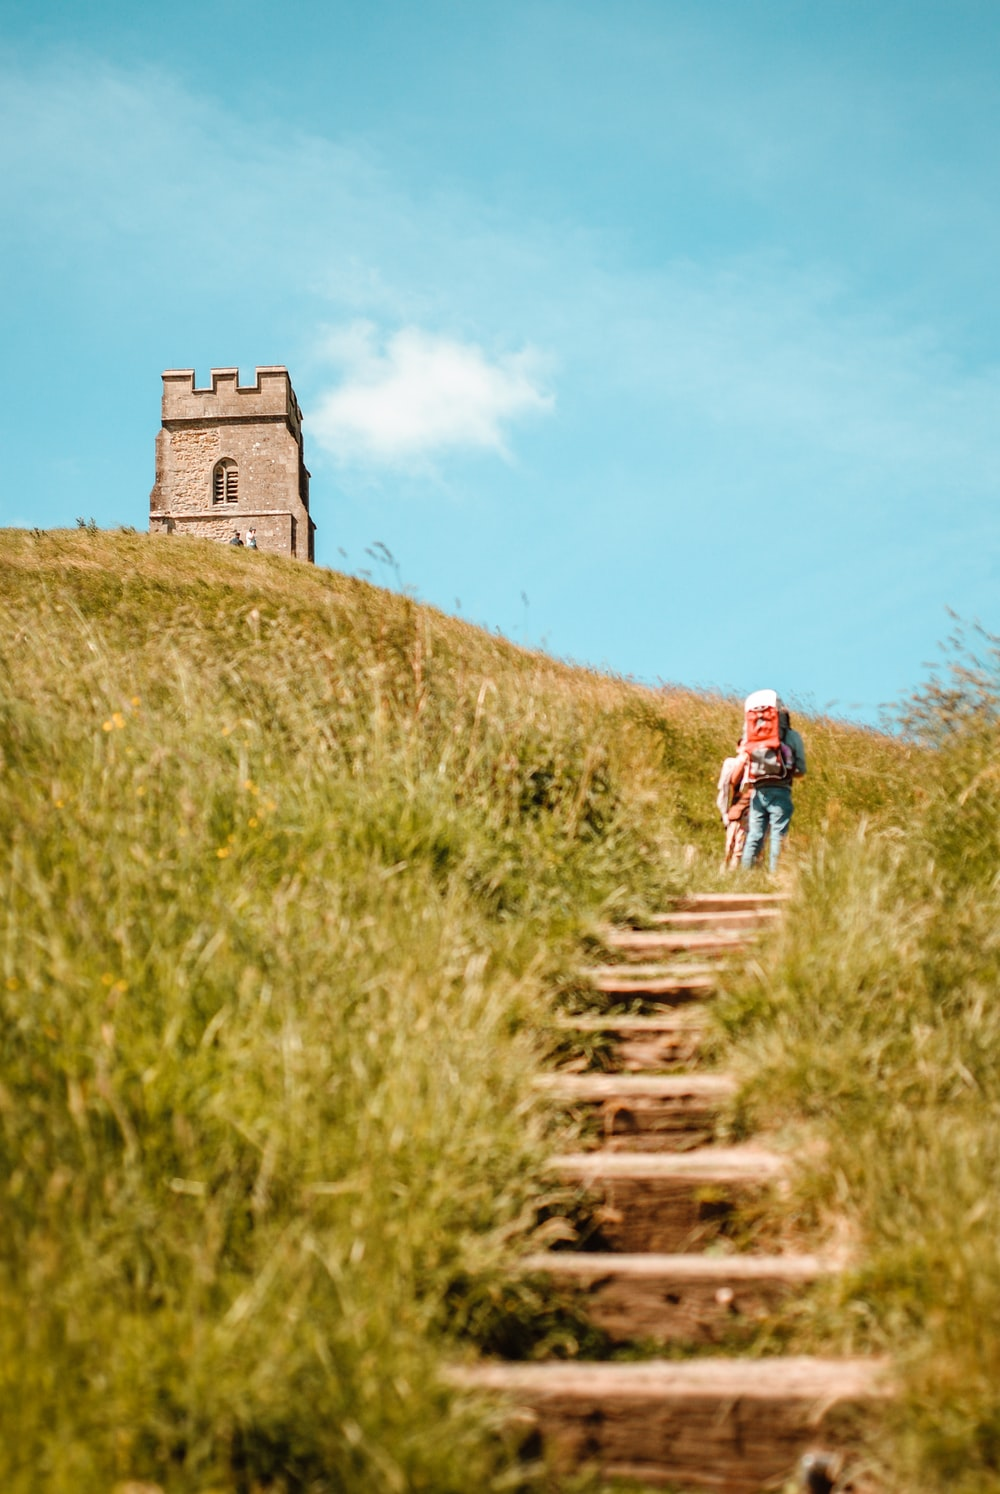 two person walks on hills near concrete stucture